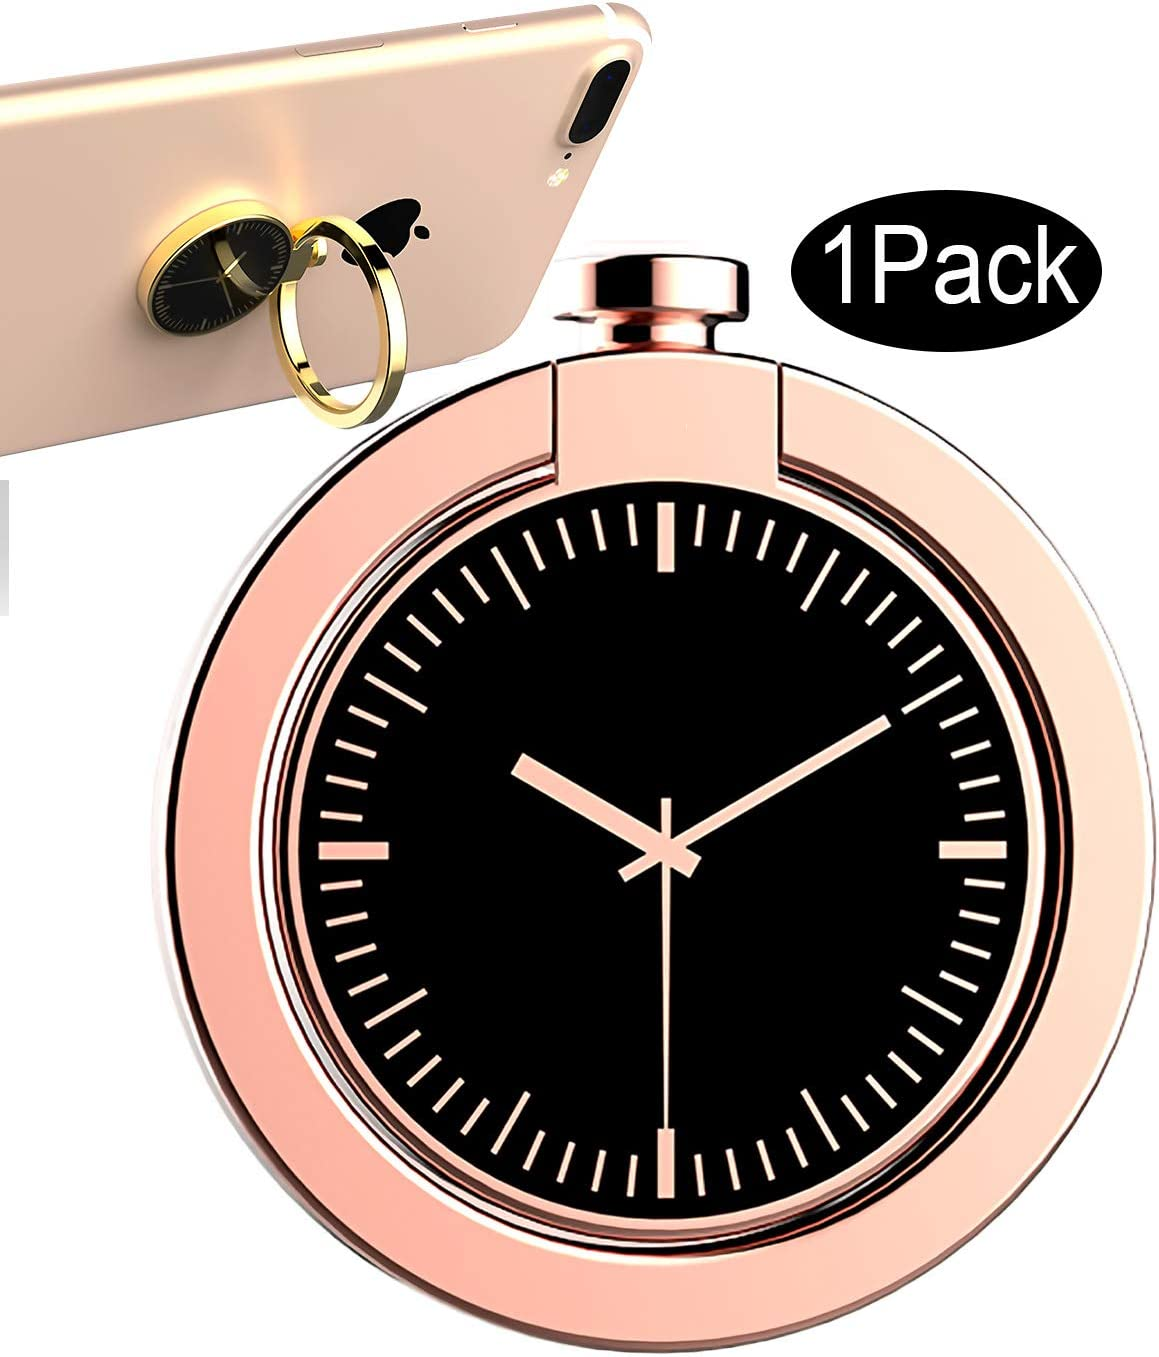 CaseHQ Rosegold Cell Phone Ring Holder, 360 Degree Rotation, Finger Grip Stand Holder Car Mount for iPhone X,iPhone 8/8 Plus 7/7plus ipad Tablet Samsung Galaxy s9 S9plus S8/S8 Plus Edge Ring Holder